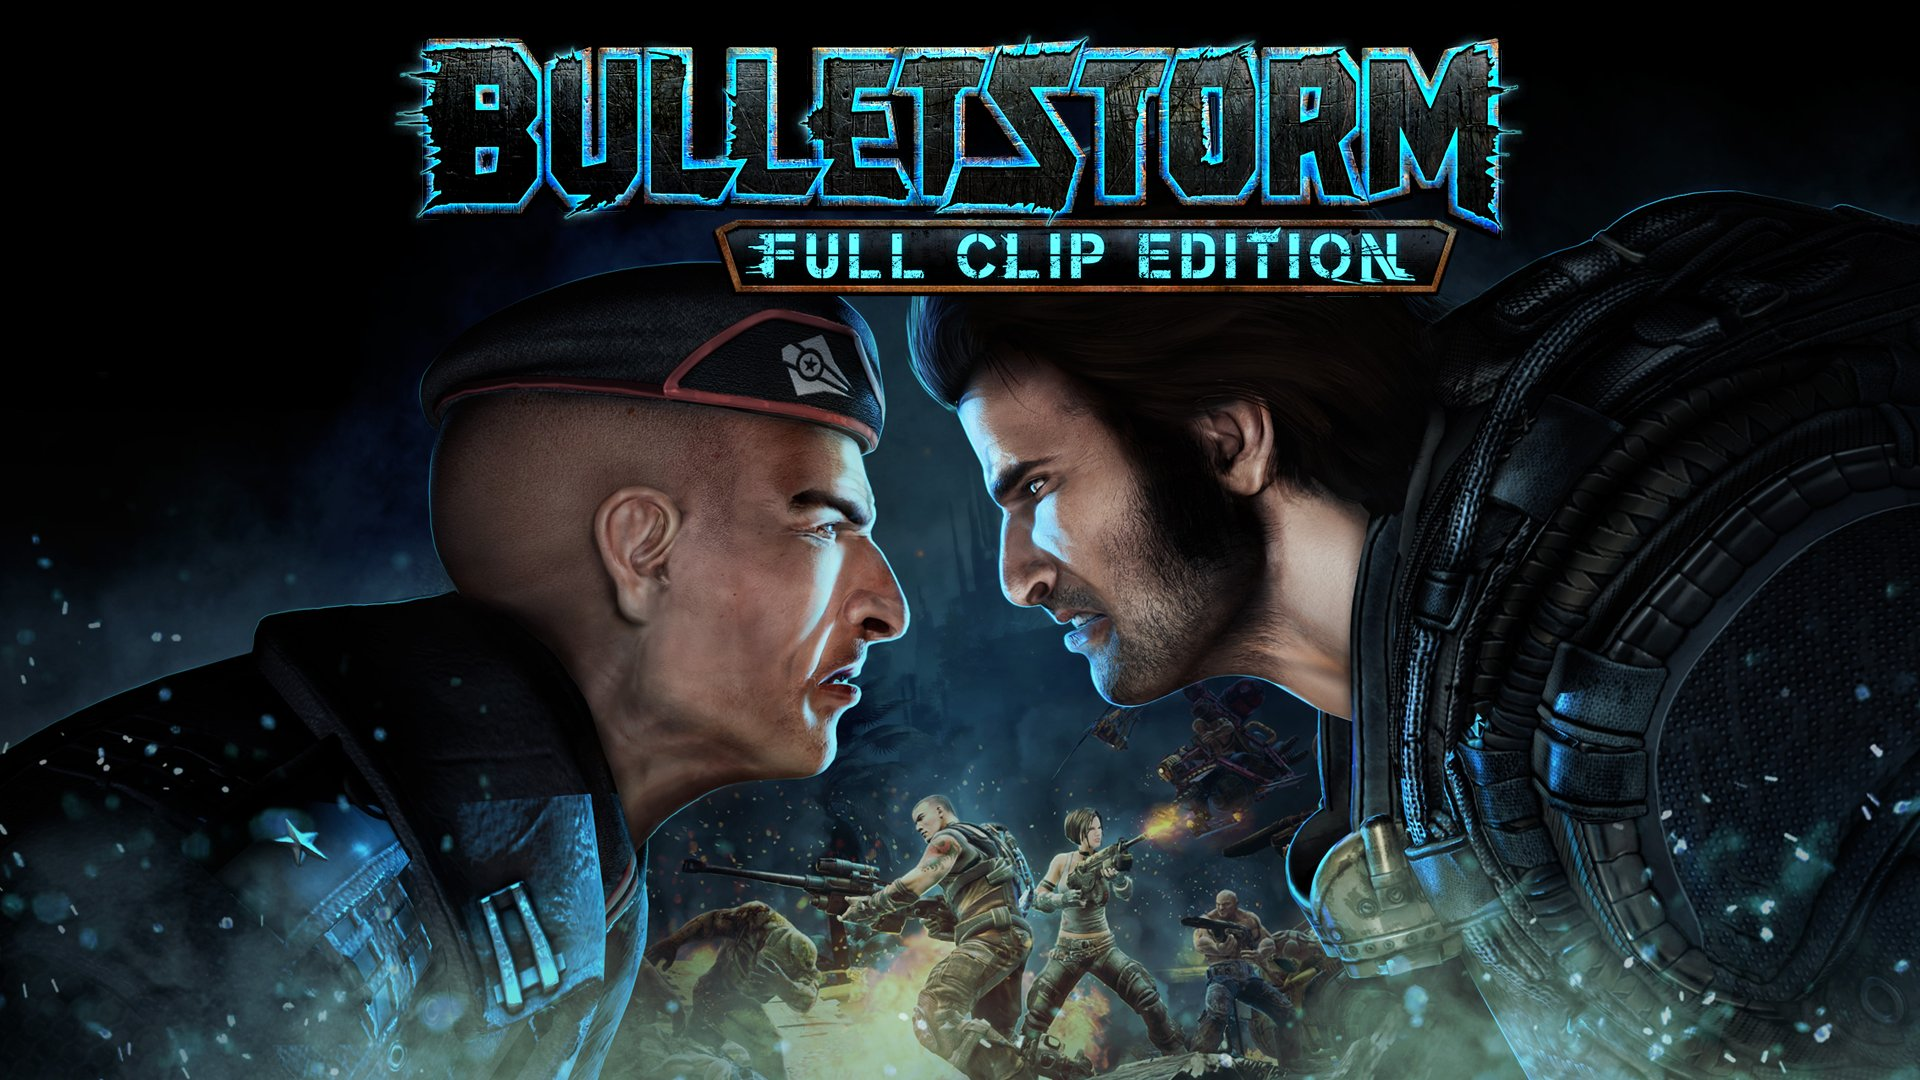 bulletstorm_full_clip_edition (1)